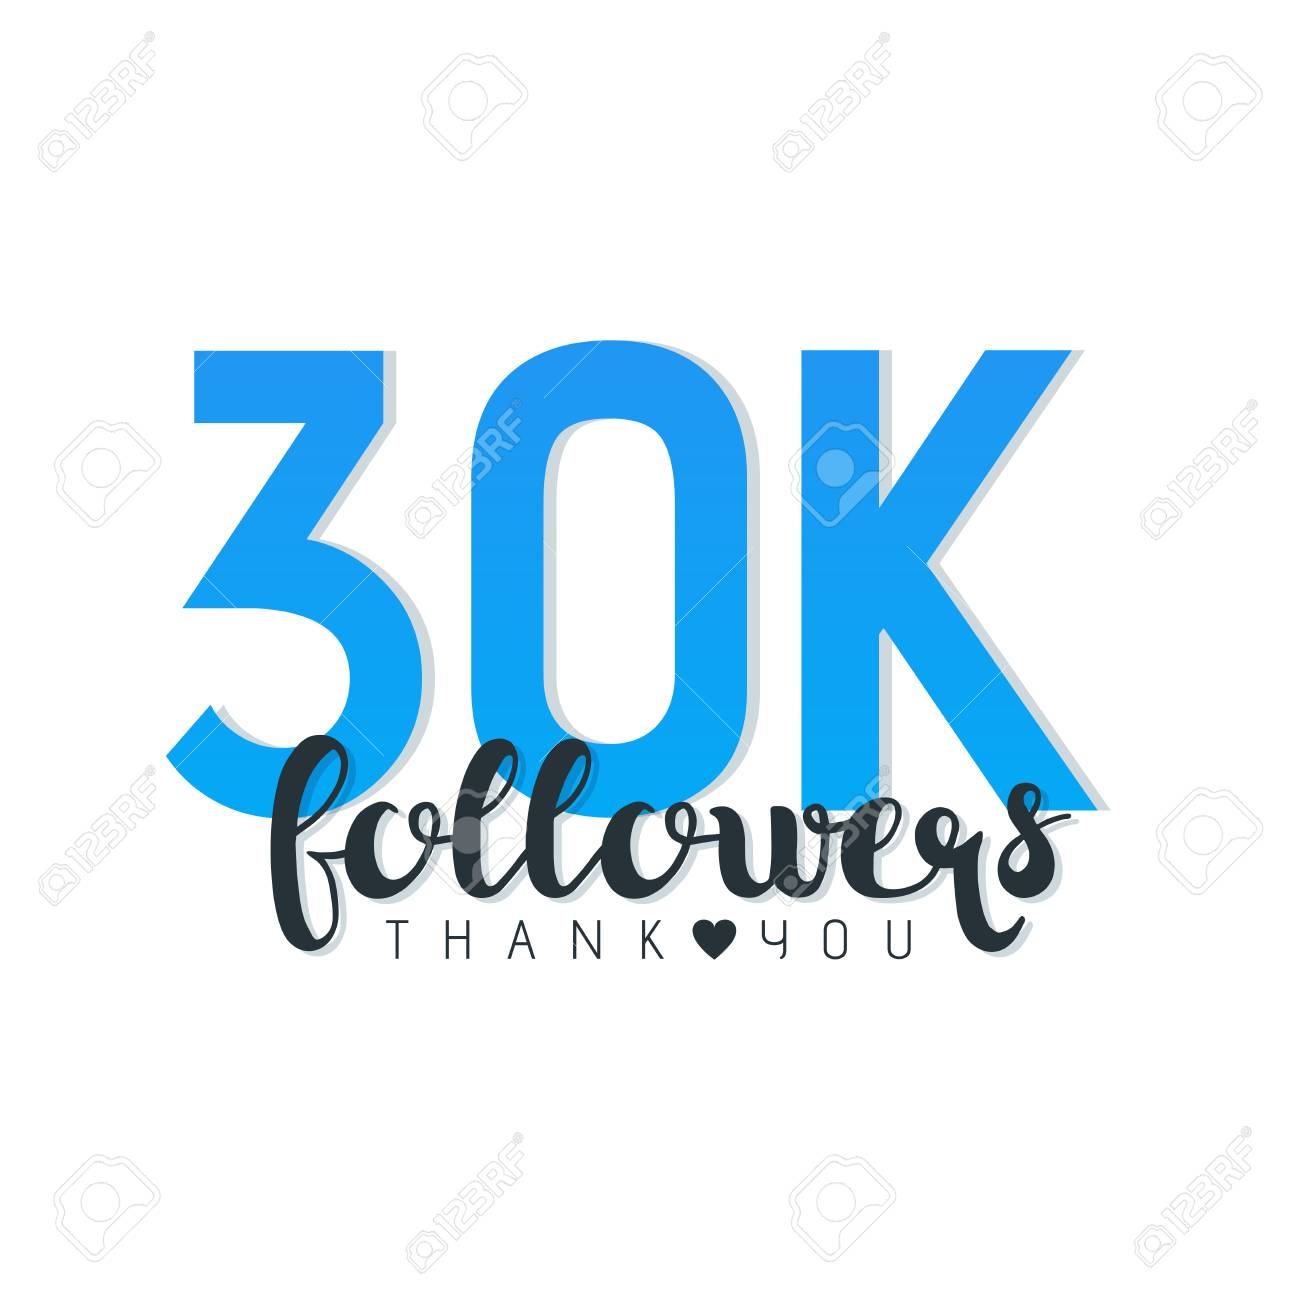 vector illustration of 30k followers thank you words isolated